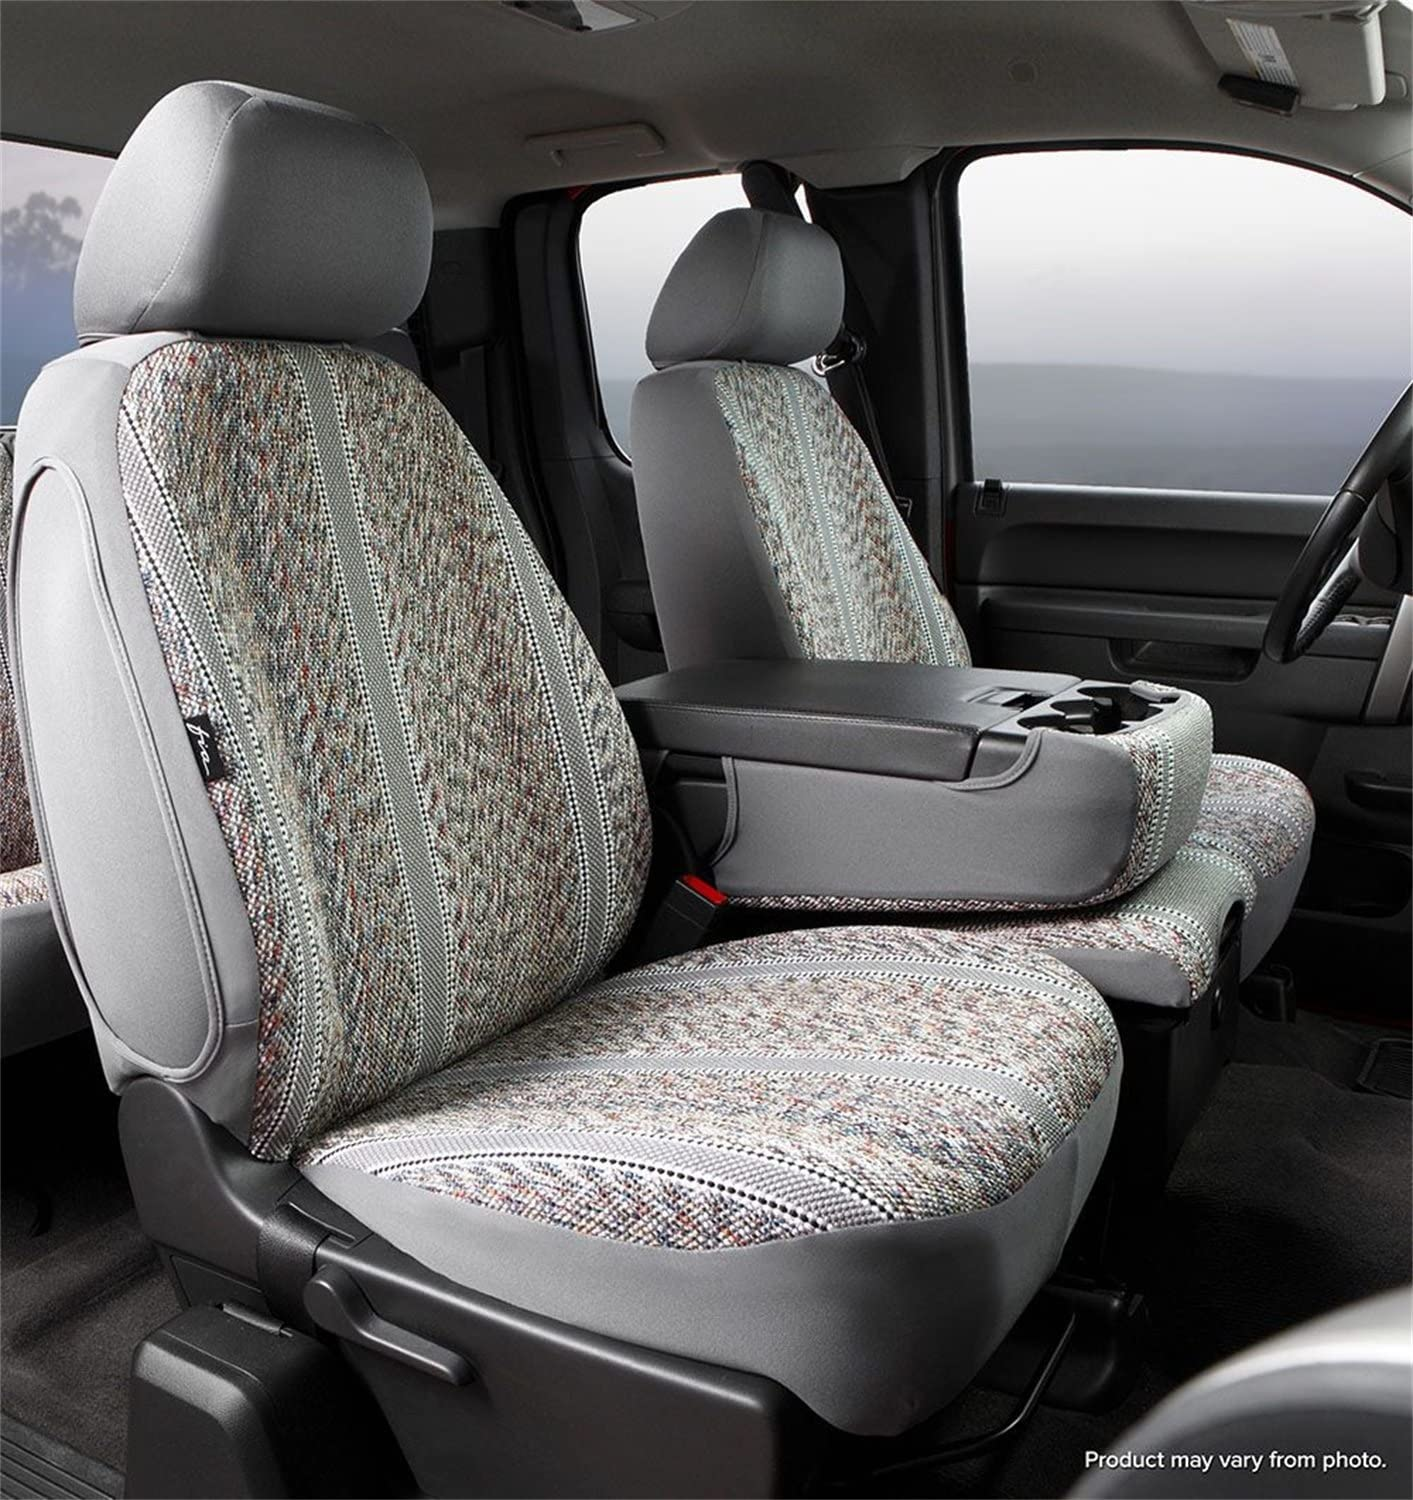 Fia TR49-39 GRAY Custom Fit Front Seat Cover Bucket Seats Gray Saddle Blanket,